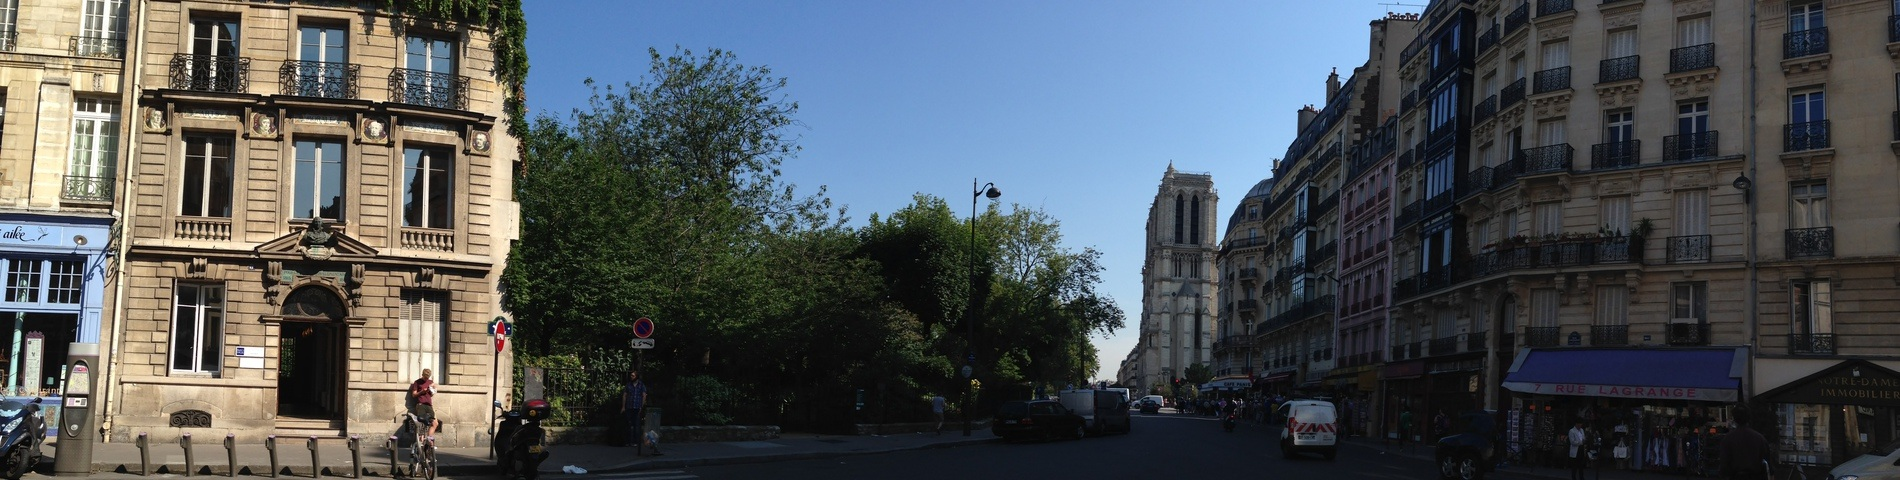 France Langue Paris Notre Dame foto 1